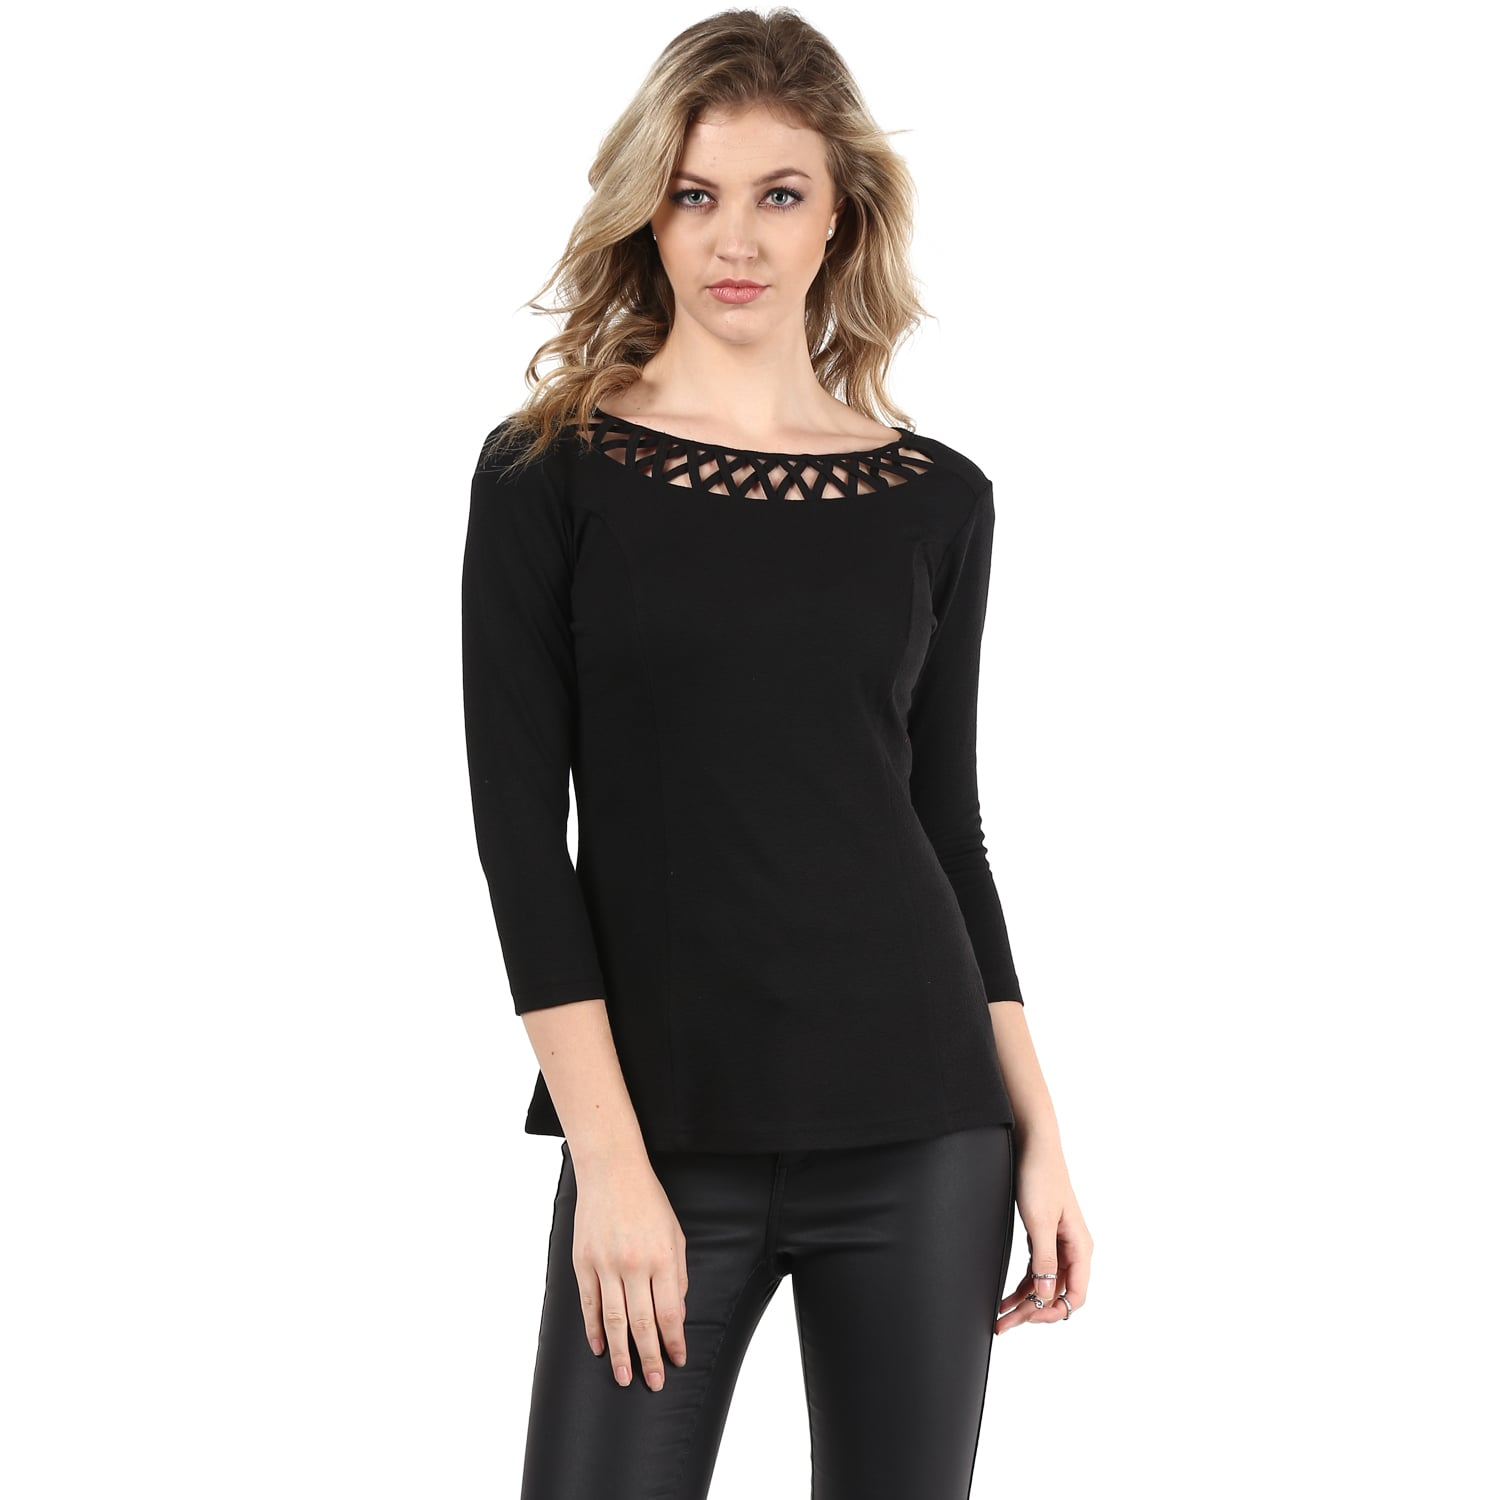 Black Jacquard Neck Detailing Line Top